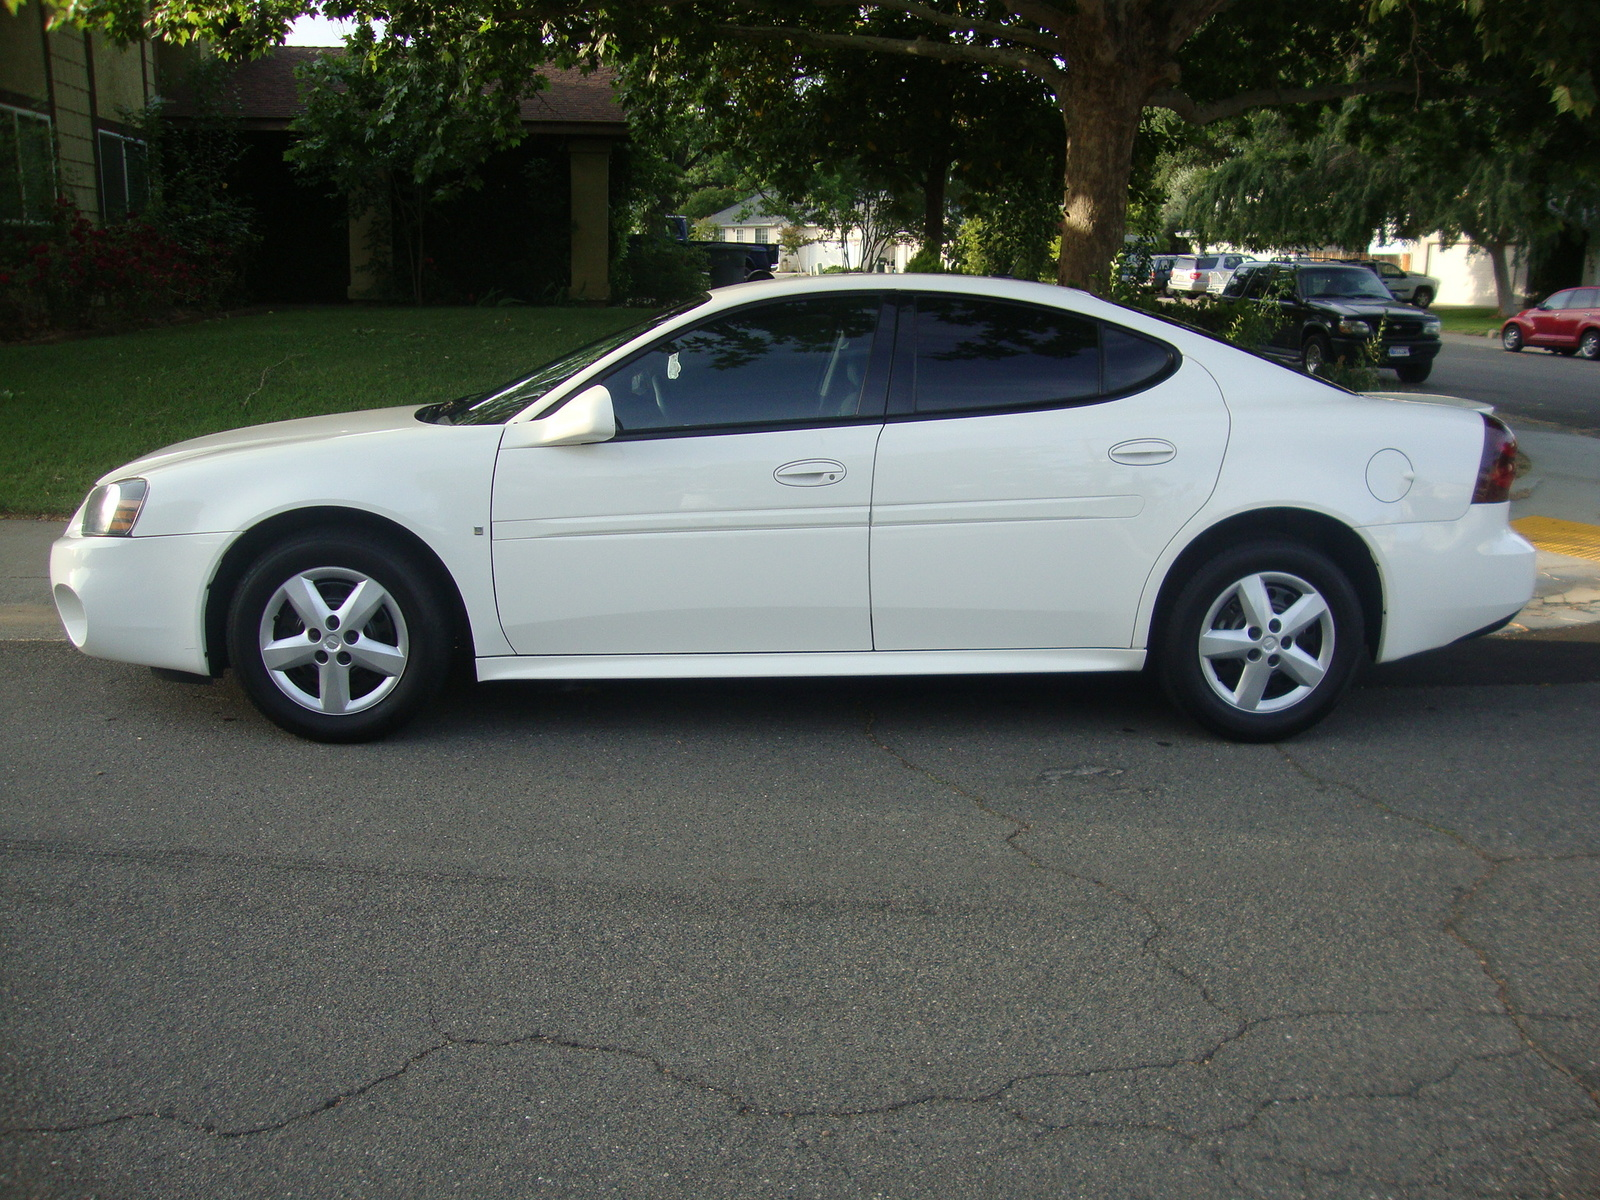 2003 Chevrolet Cavalier Photo additionally Richland likewise 1967 Volkswagen Beetle photo also Wilson in addition 1997 Ford Taurus Pictures C218. on 2003 impala car